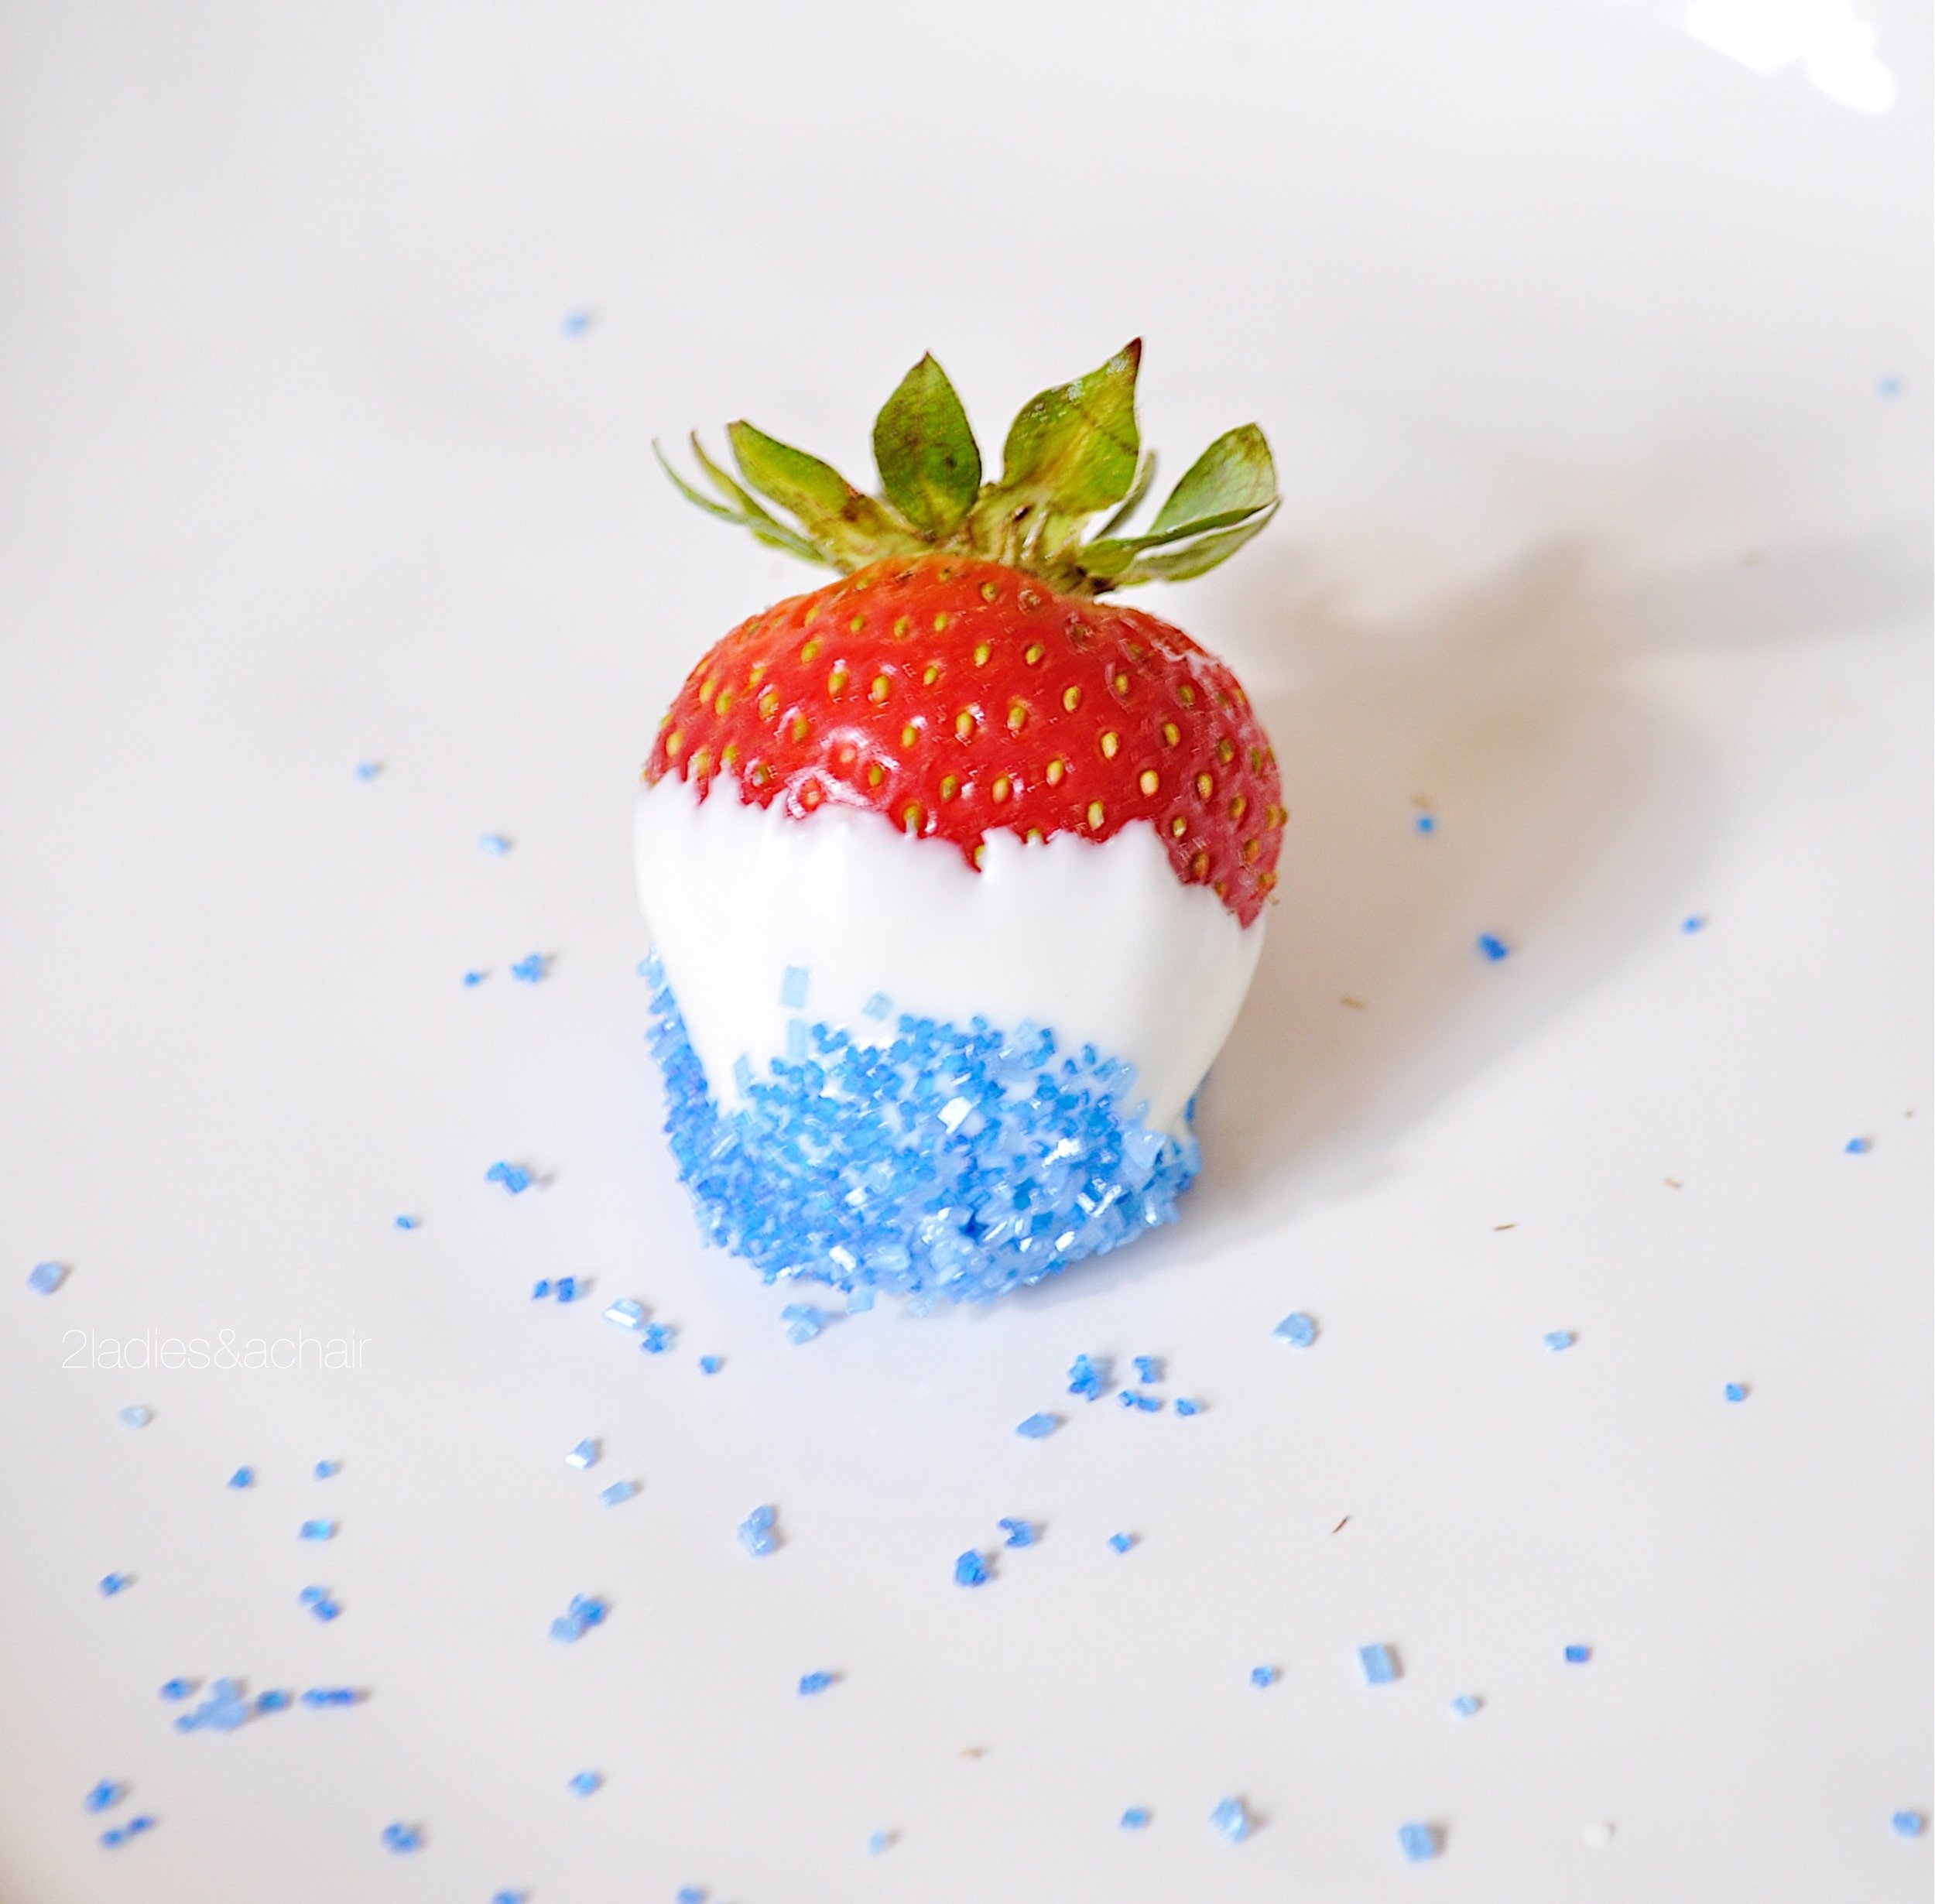 july 4th party ideas IMG_1023.JPG